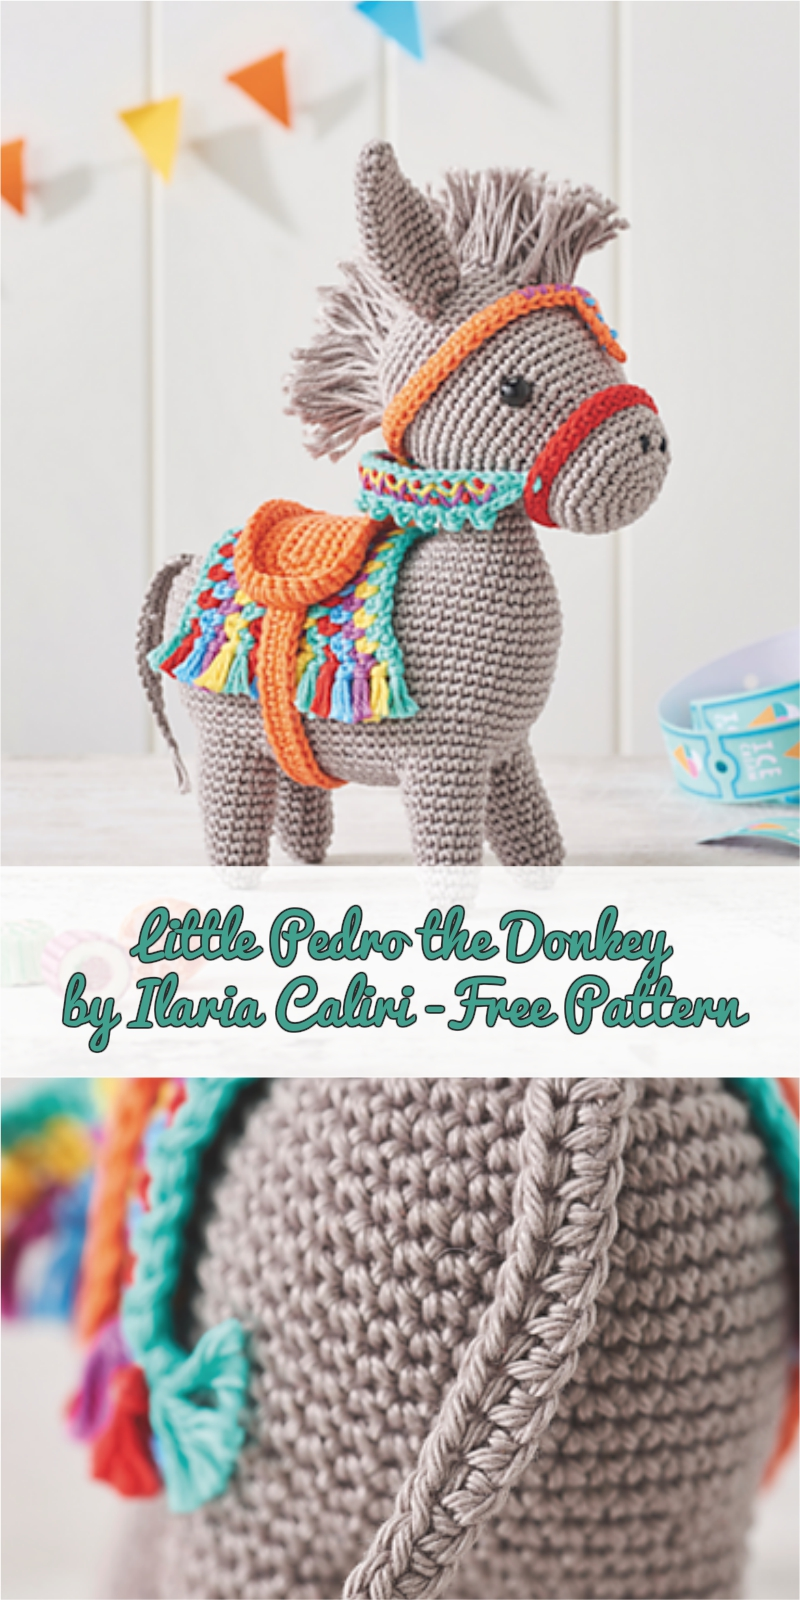 Little Pedro the Donkey by Ilaria Caliri - Free Pattern